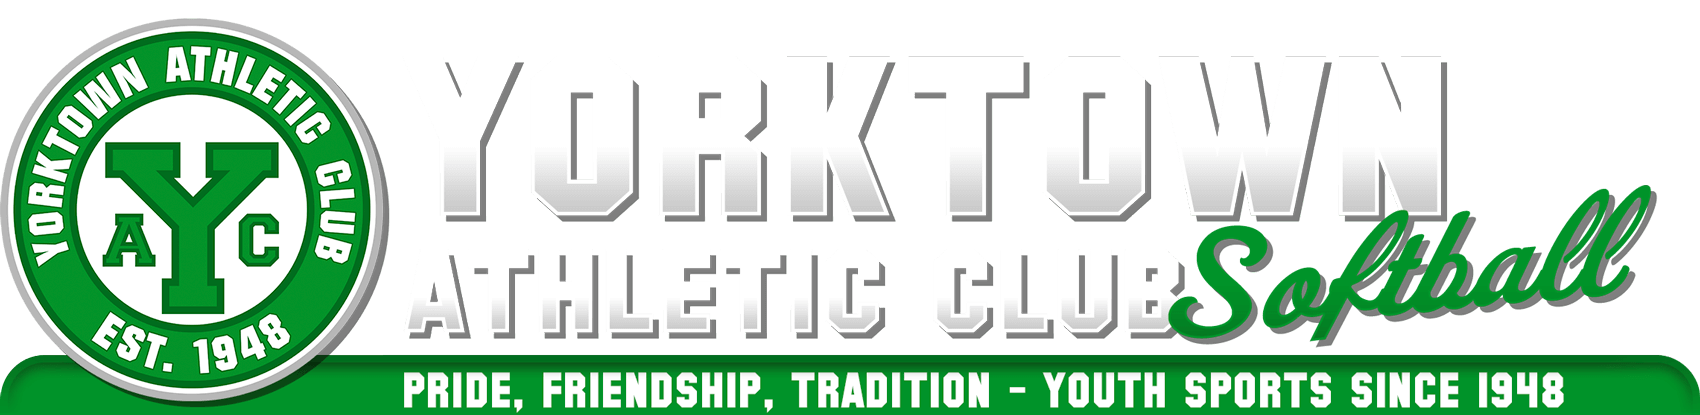 Yorktown Athletic Club, Girls Softball, Softball, Run, Field